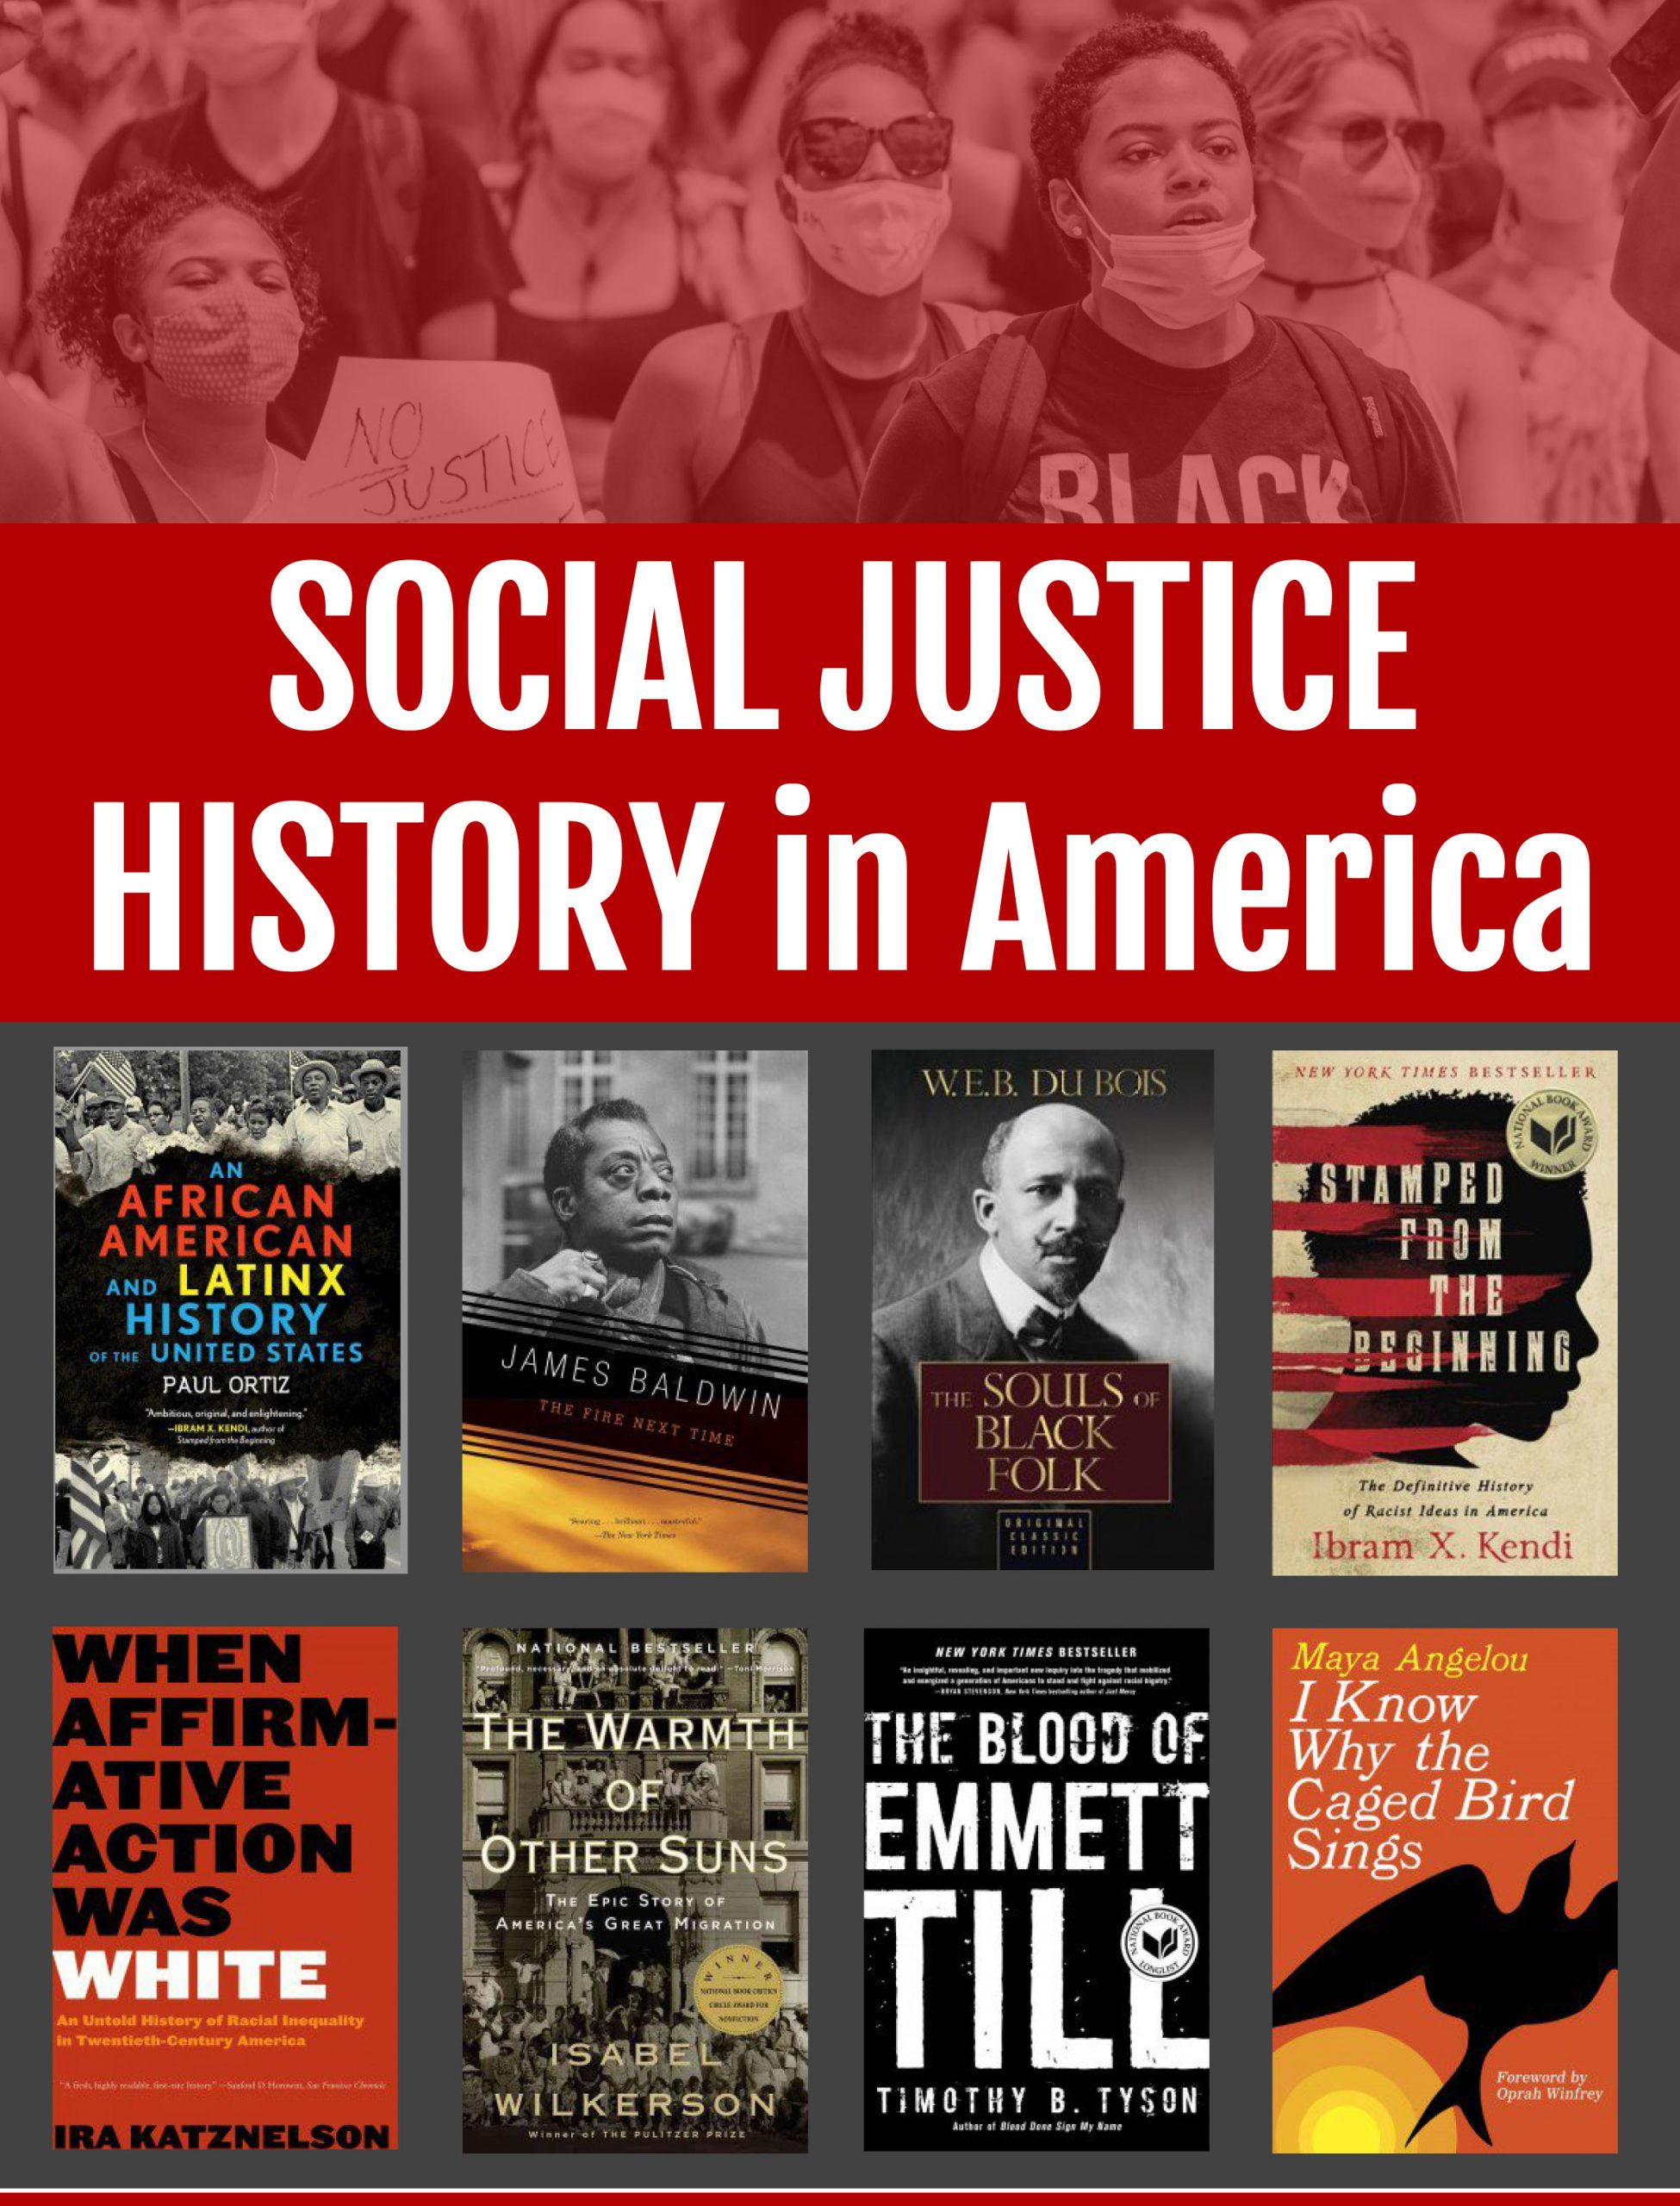 image of social justice history books